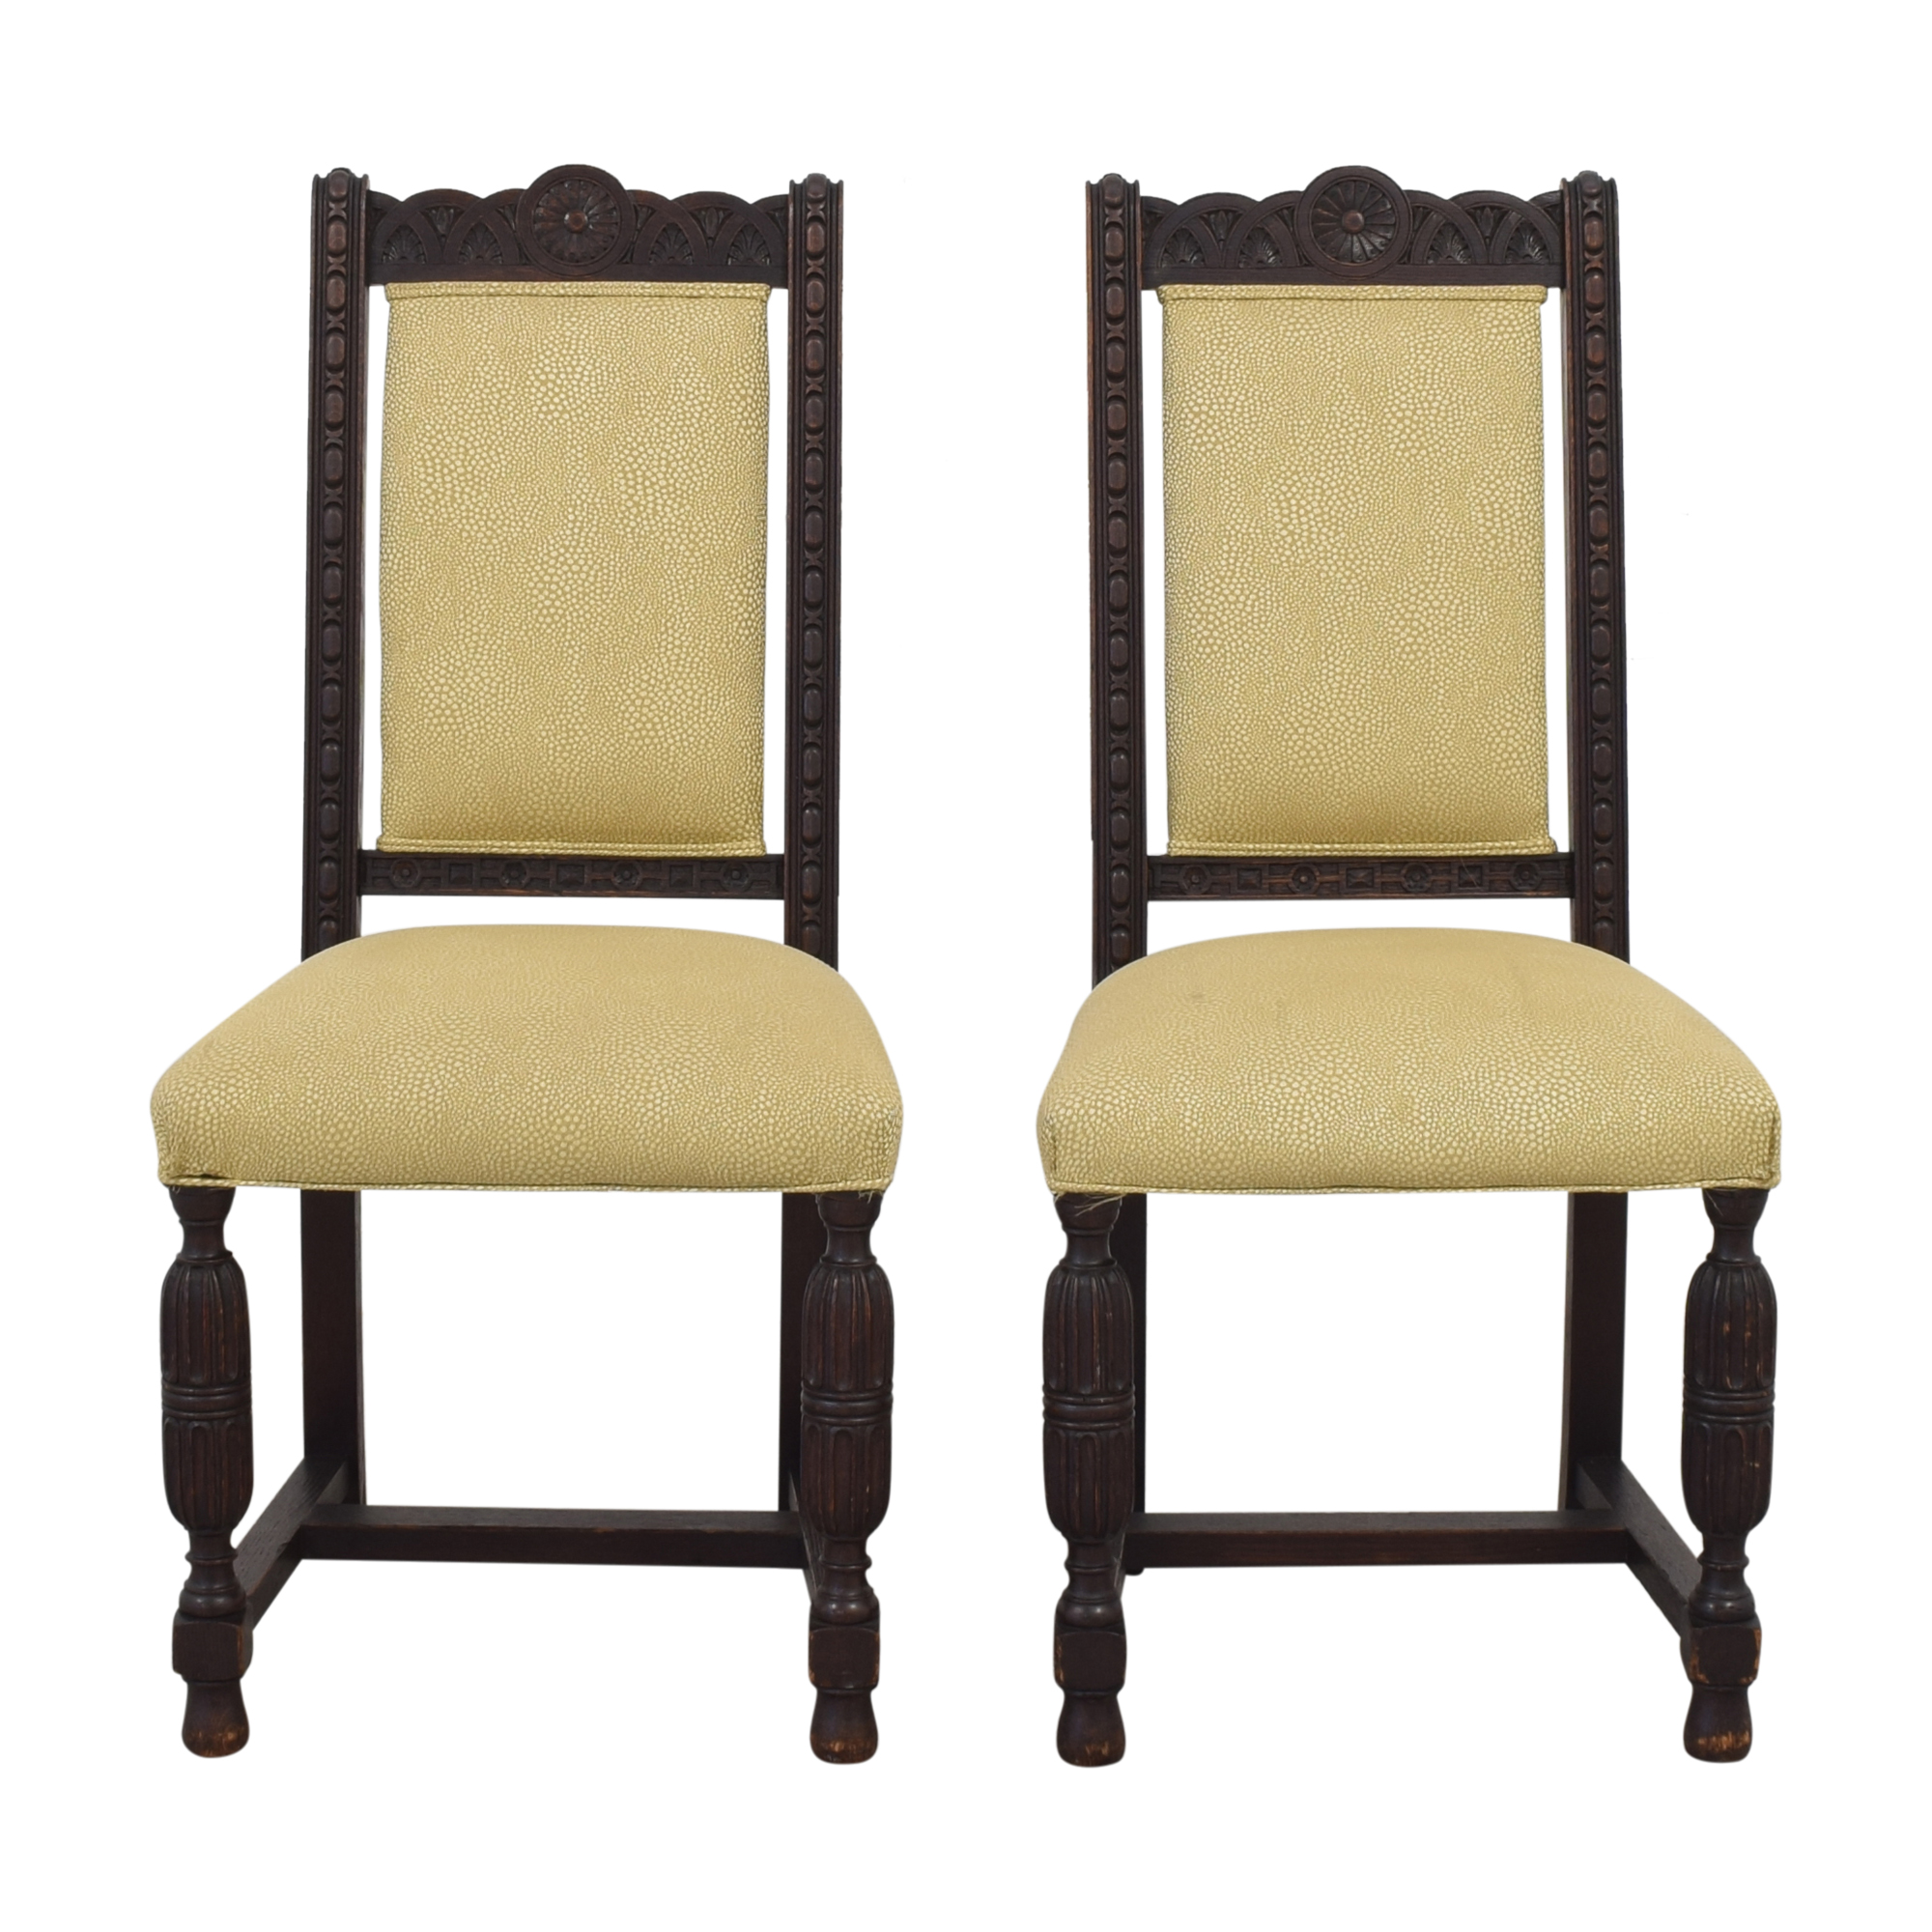 Vintage H. Lauzon Dining Chairs brown & beige